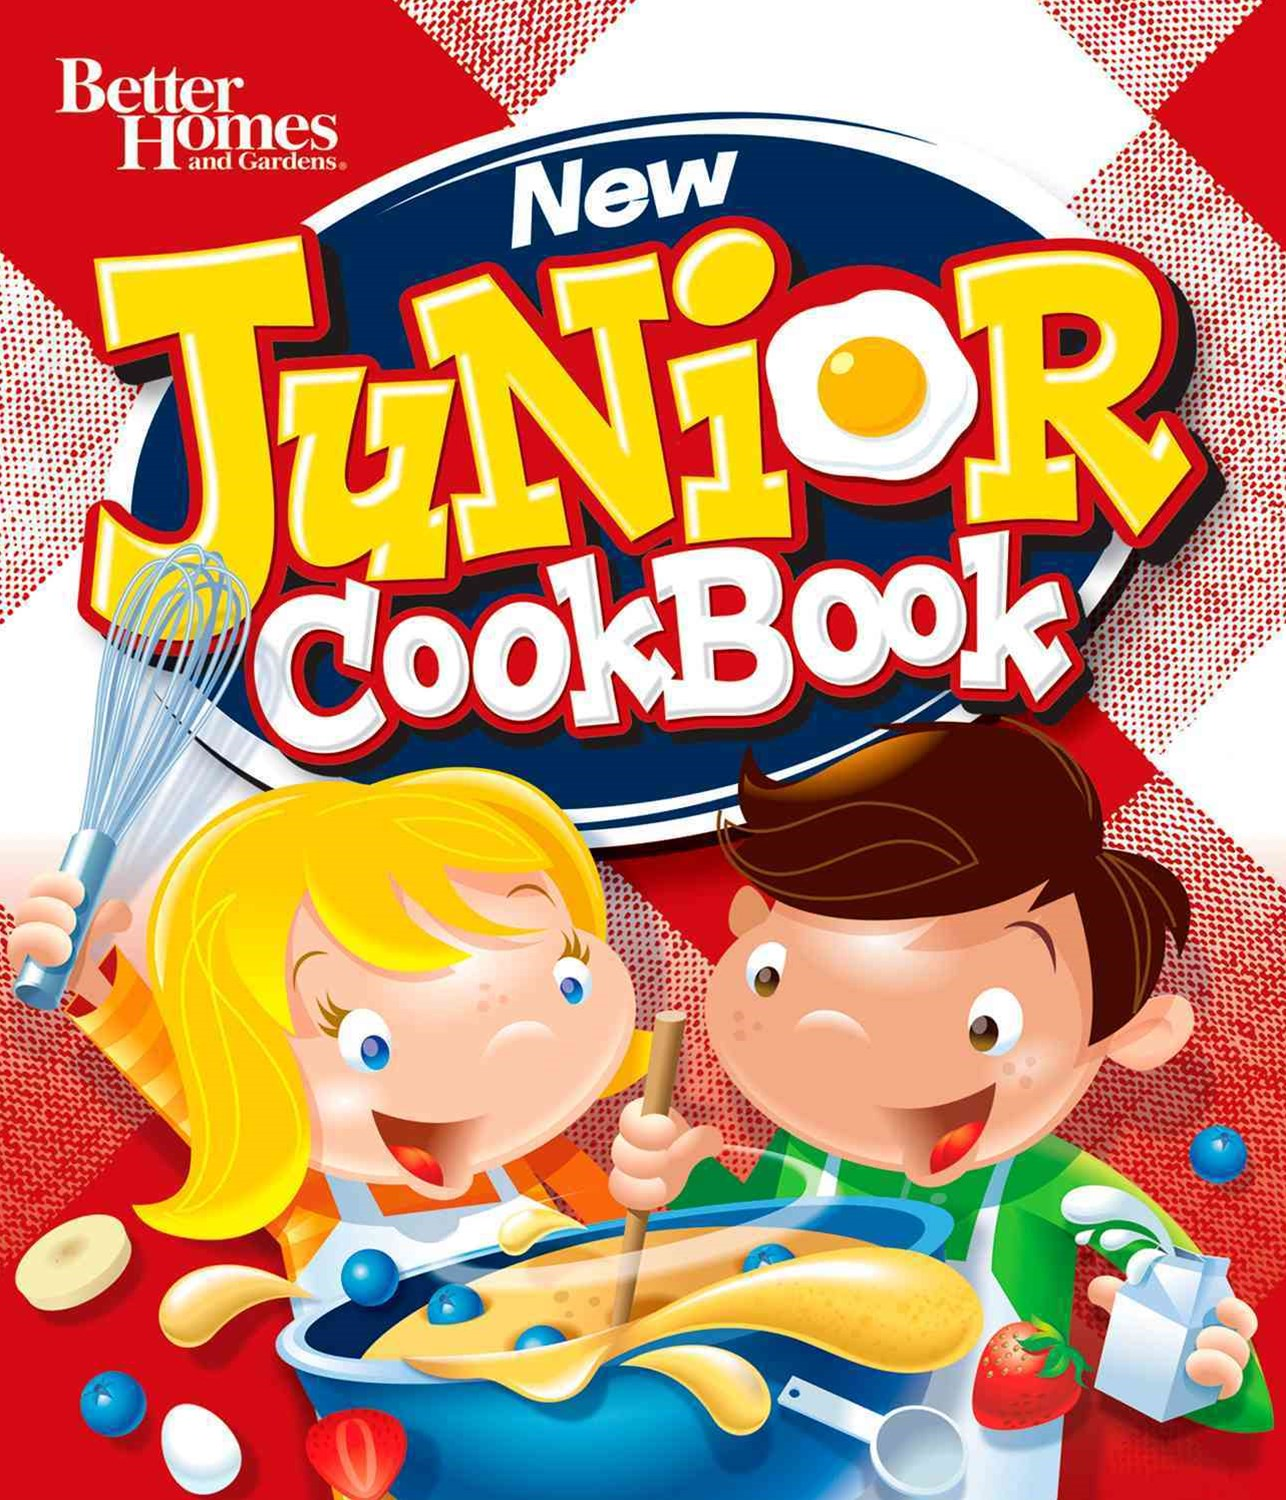 New Junior Cookbook: Better Homes and Gardens